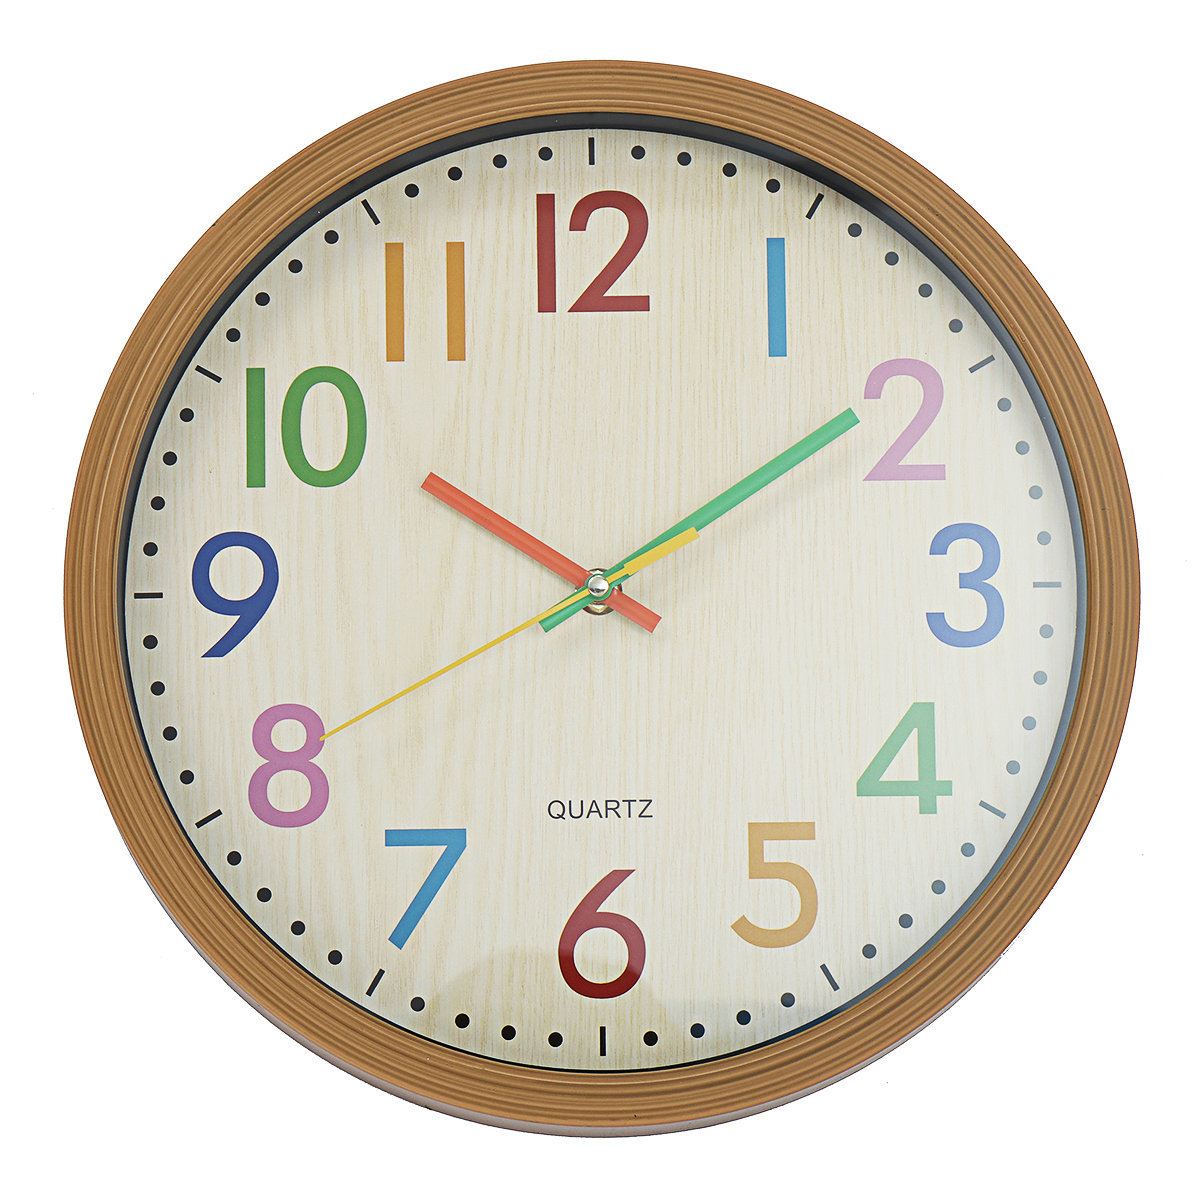 Silent Non-Ticking Quartz Wall Clock Decorative Indoor Quartz Analogue Clock